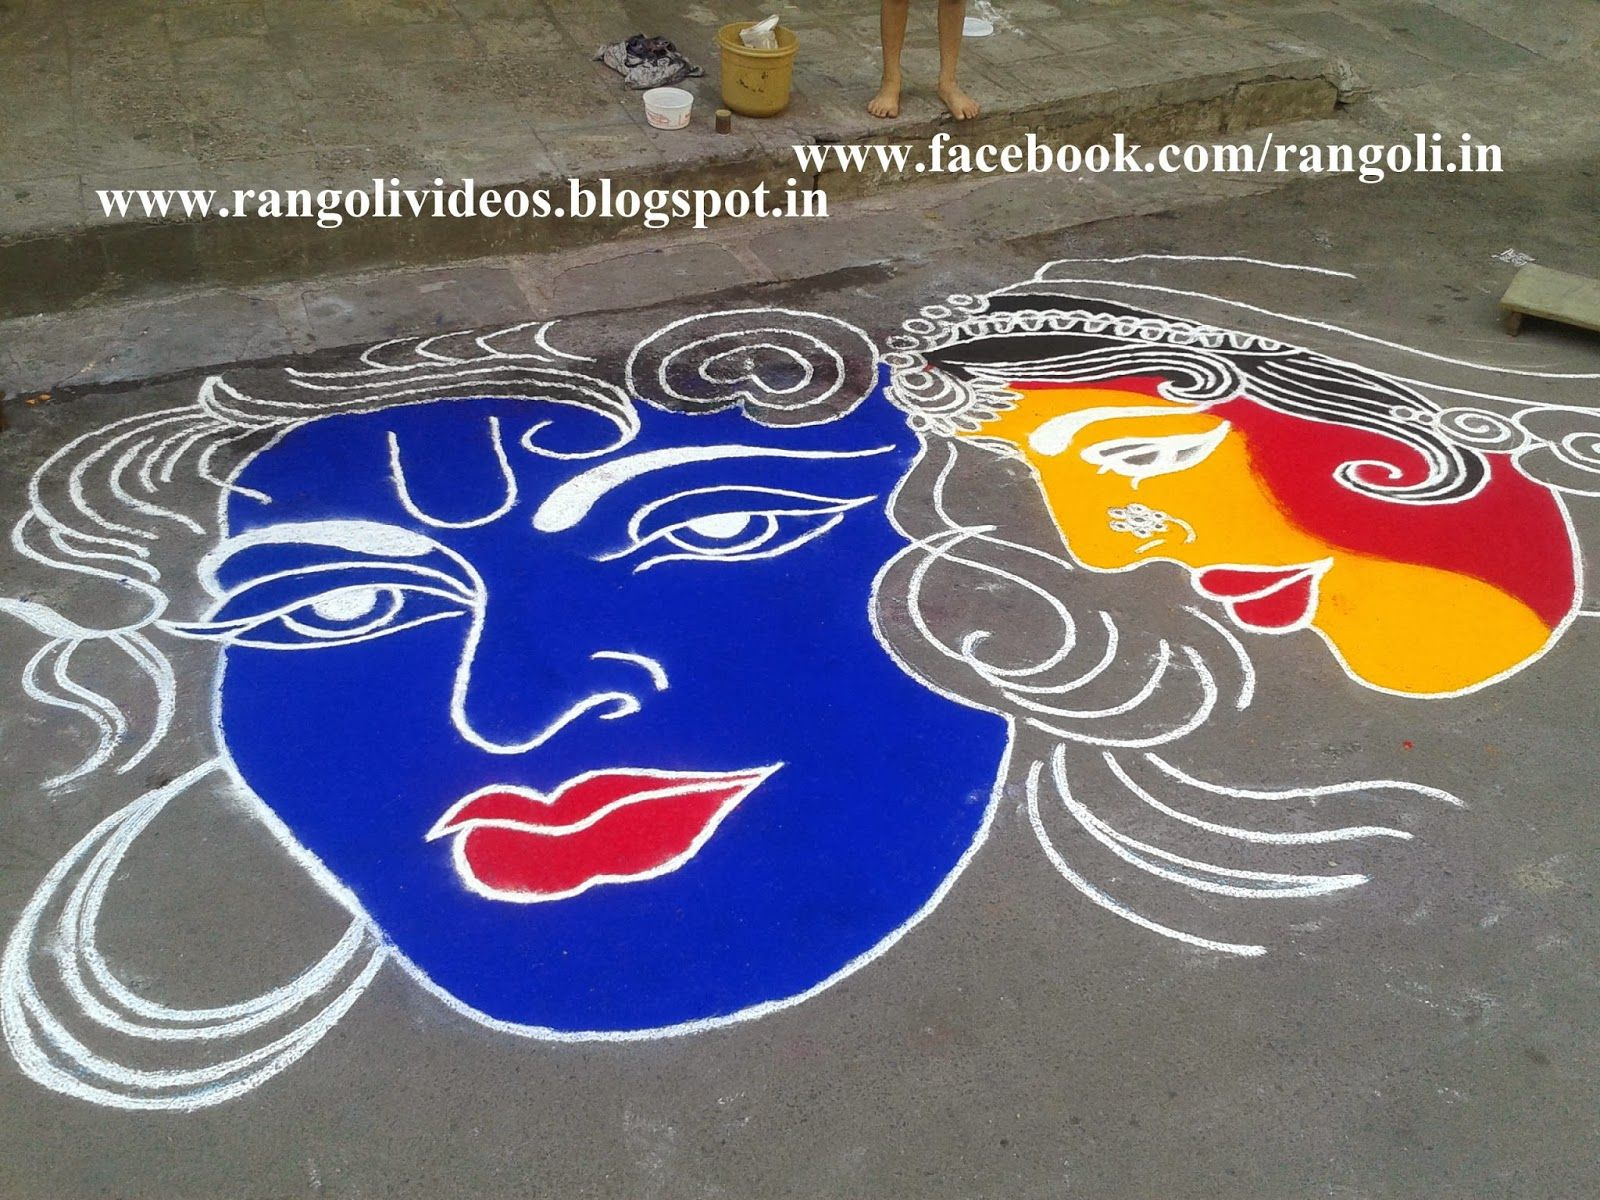 Rangoli Designs For Competition With Concepts Rangoli designs